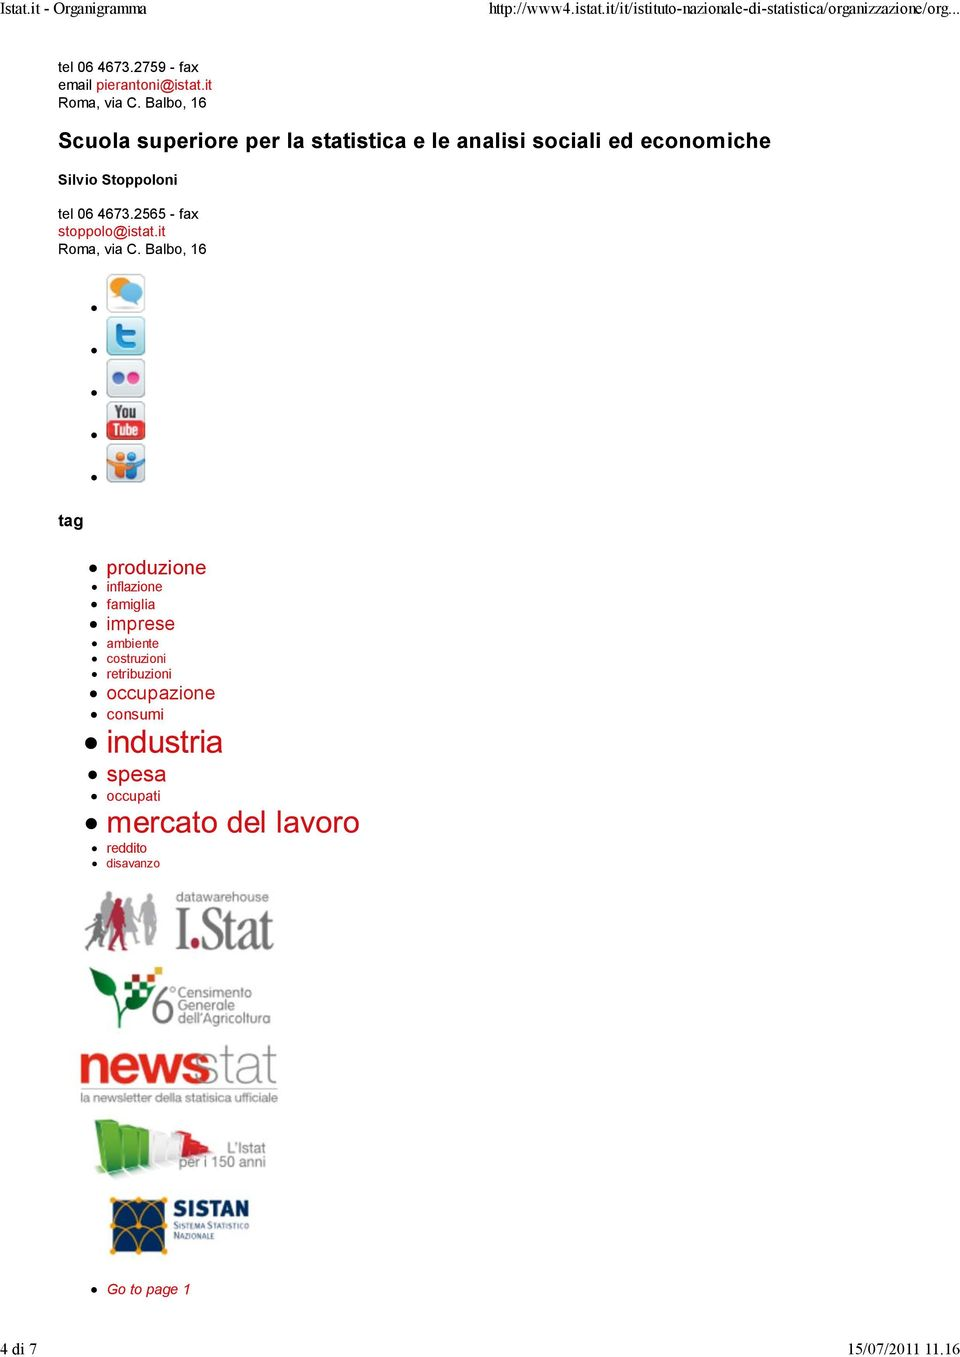 tel 06 4673.2565 - fax stoppolo@istat.it Roma, via C.